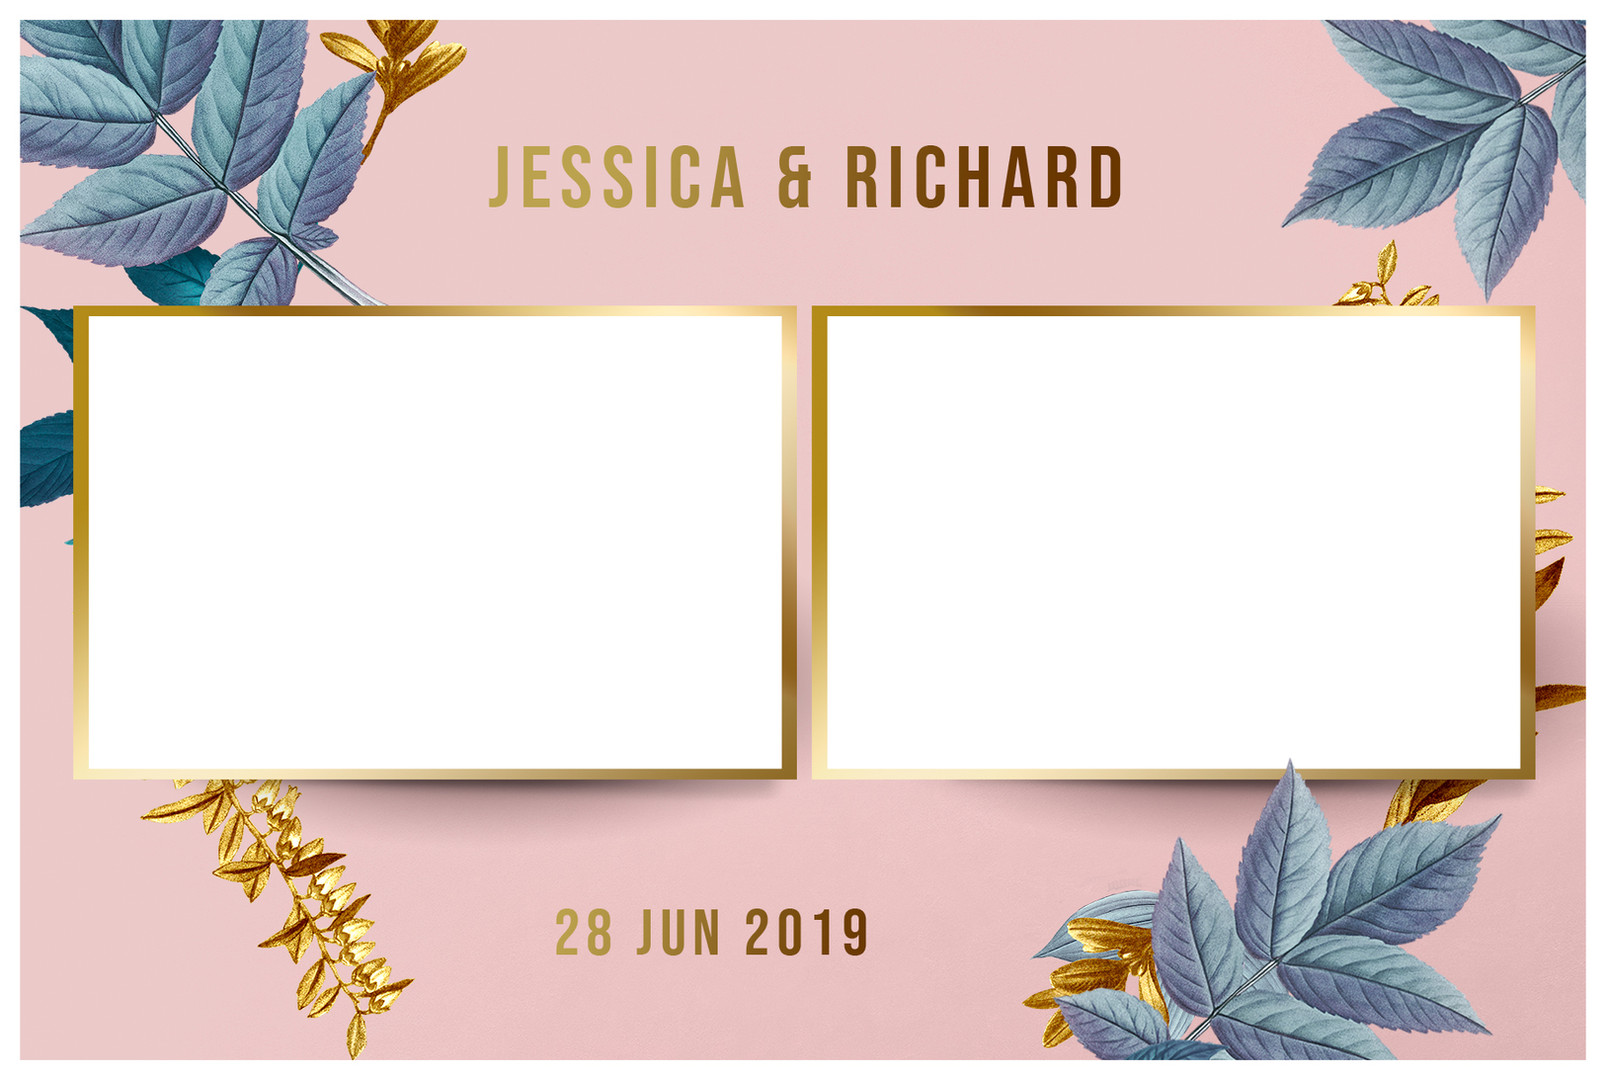 Jessica and Richard 2.jpg